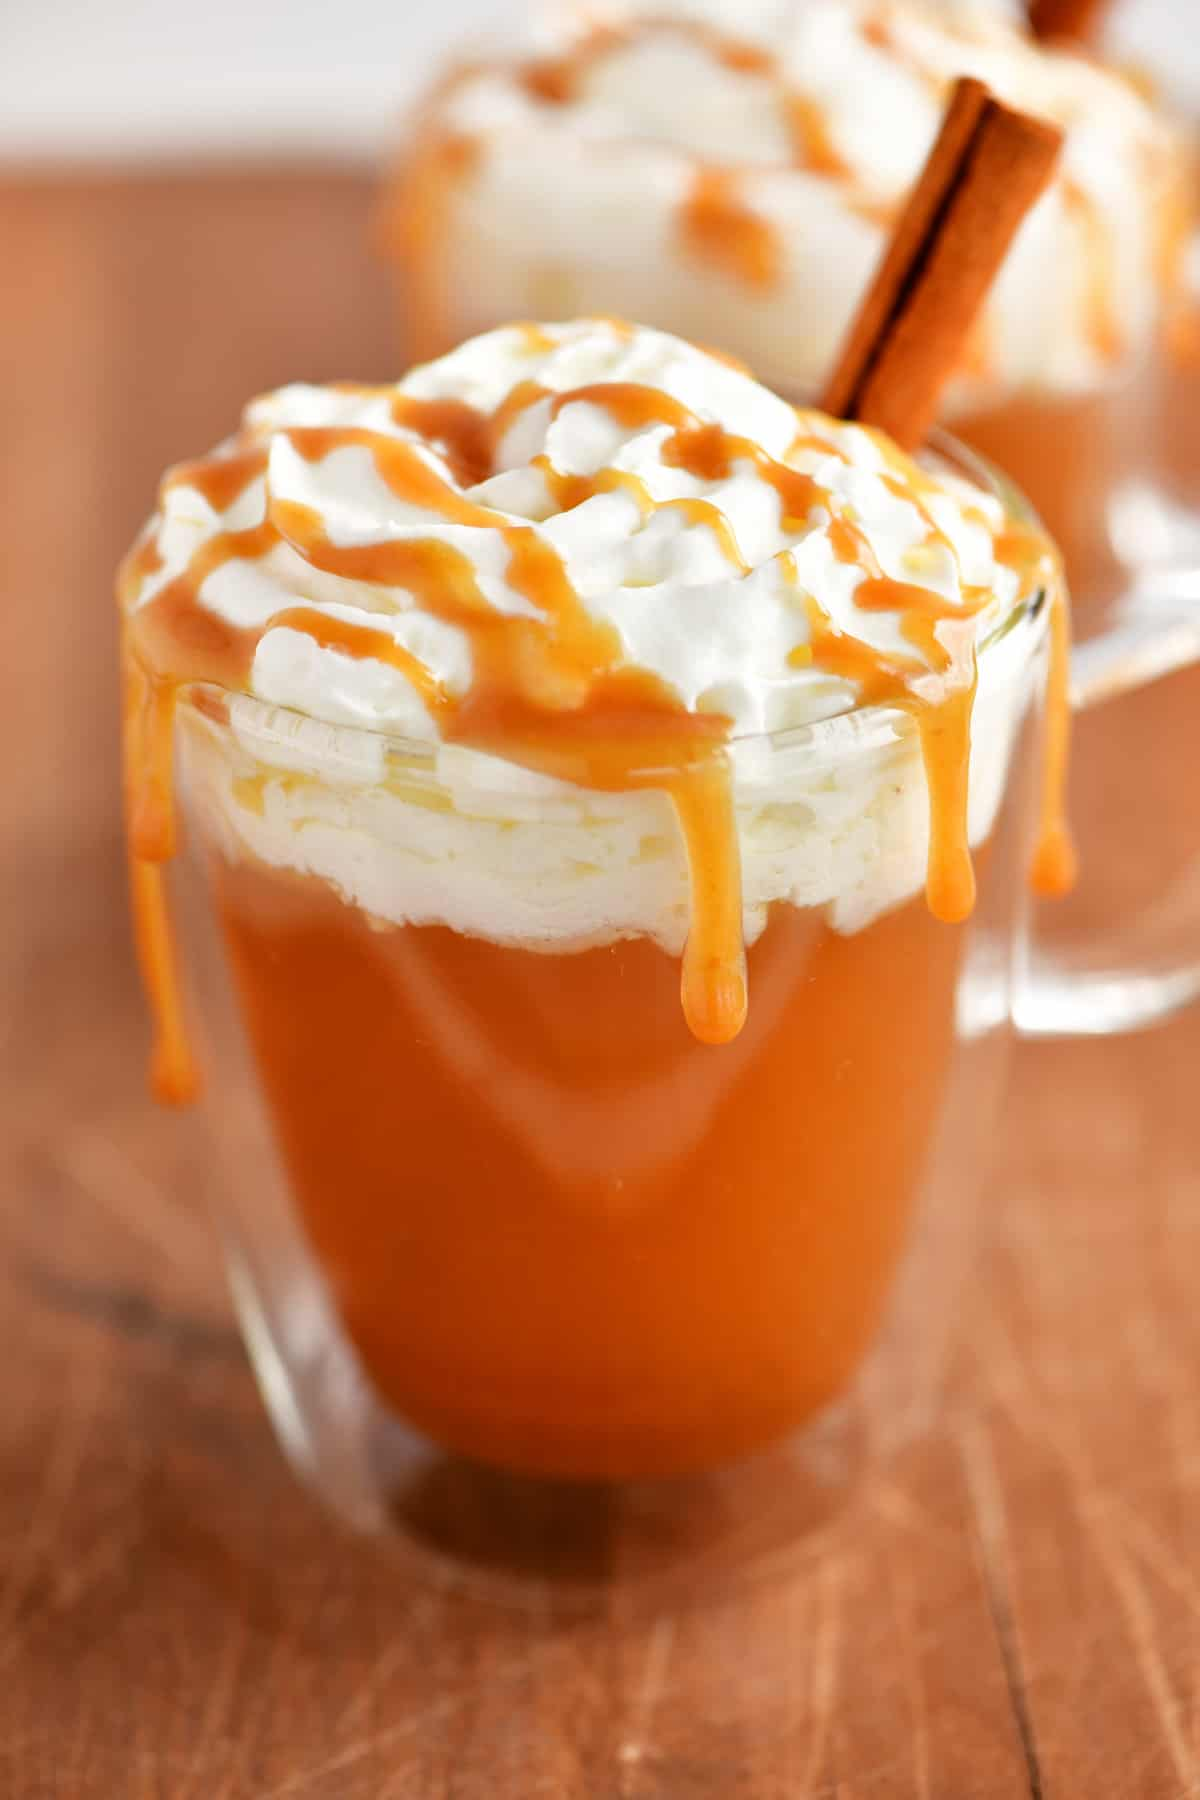 whipped cream and caramel on hot apple cider